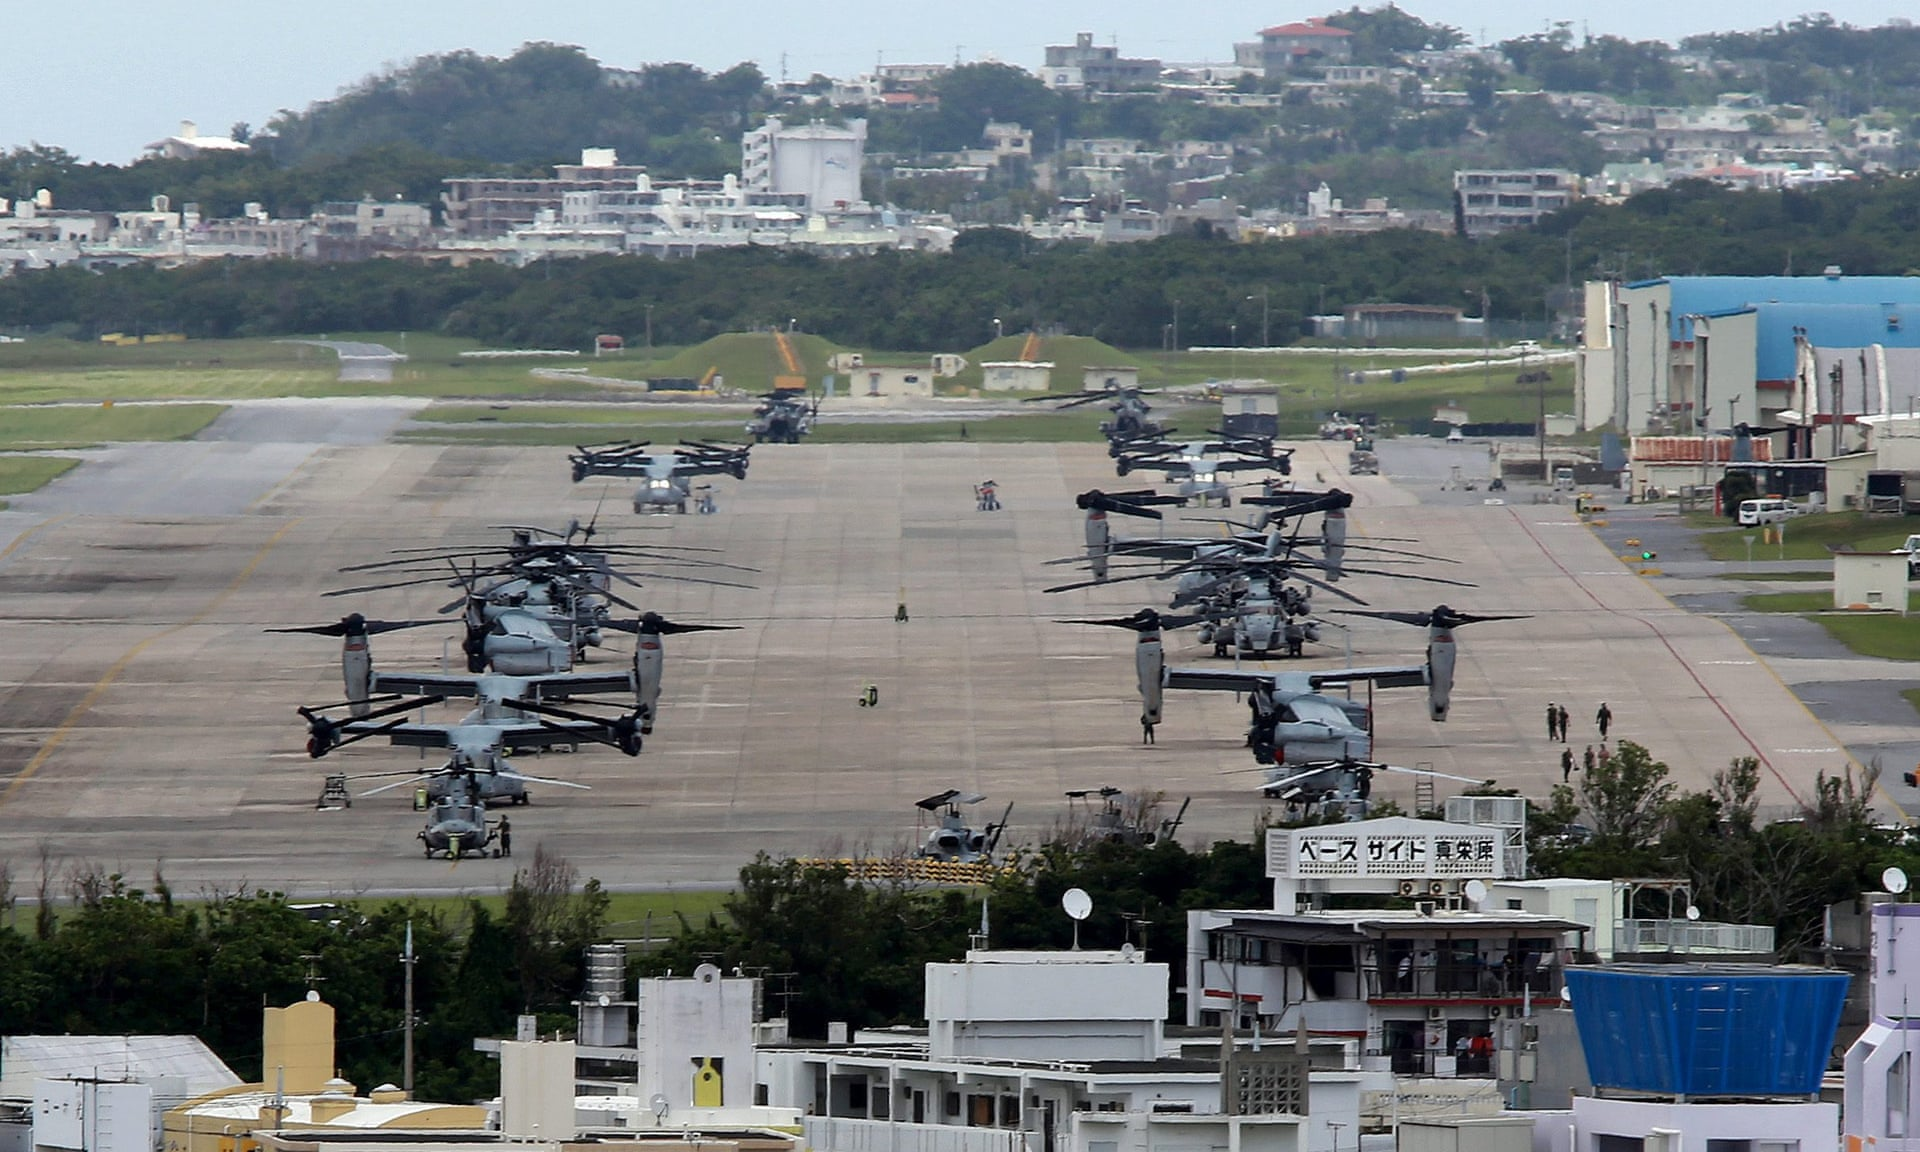 Okinawa base ready for war with North Korea which is one of the reasons Pyongyang said it needed to develop nuclear weapons. Photo Credit: Hitoshi Maeshiro/EPA